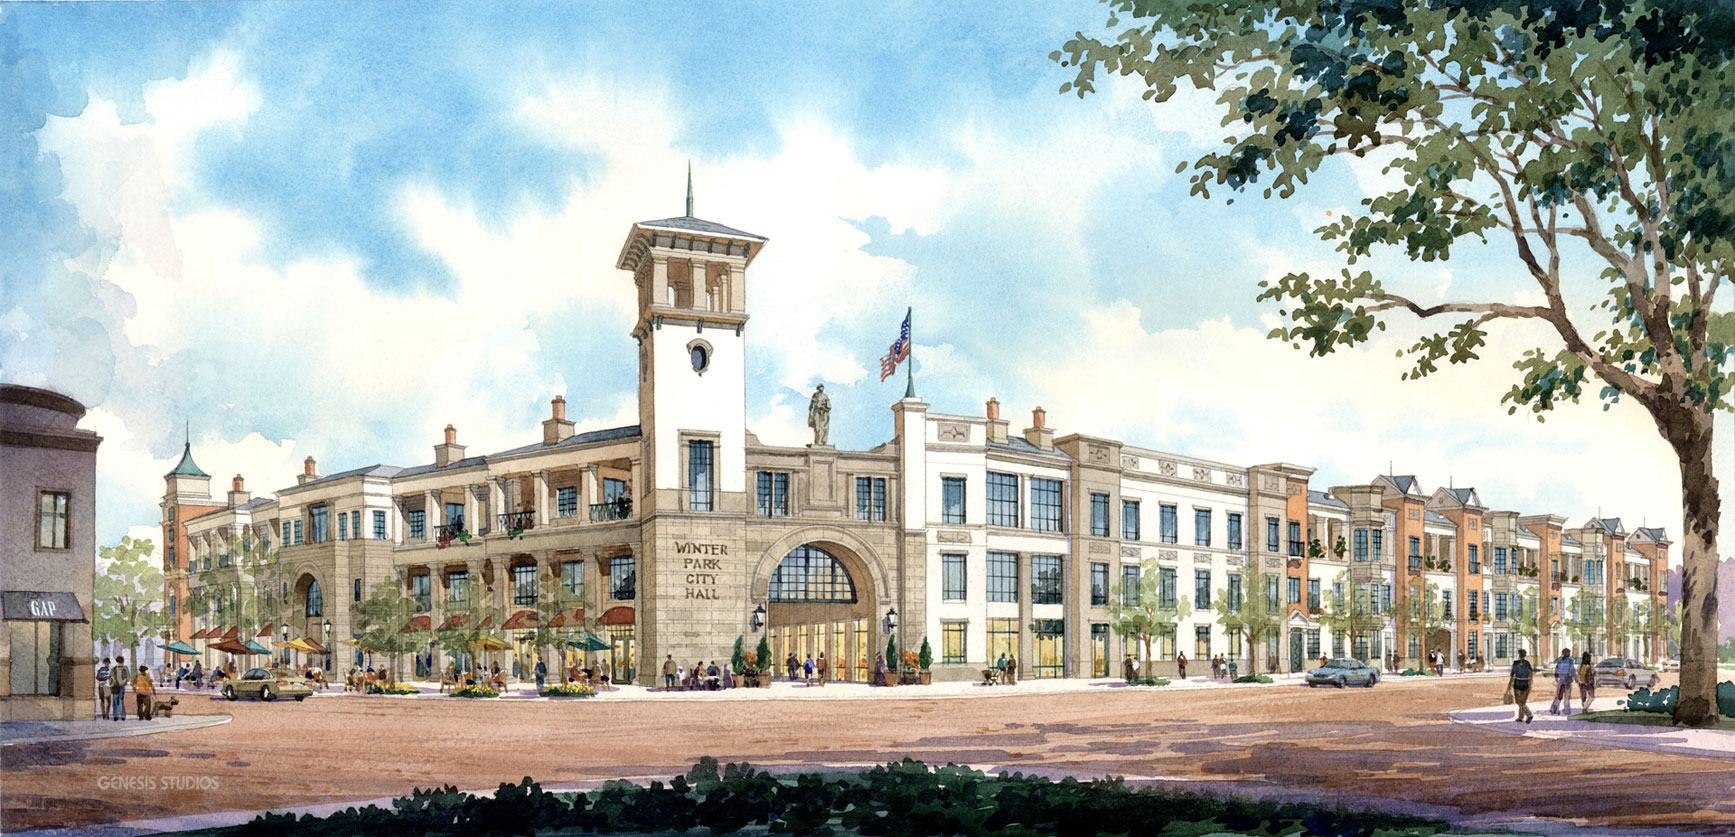 414215 Watercolor Architectural Rendering of United States Postal Service Downtown Central Park Station in Winter Park City Hall Complex for ACi Architects